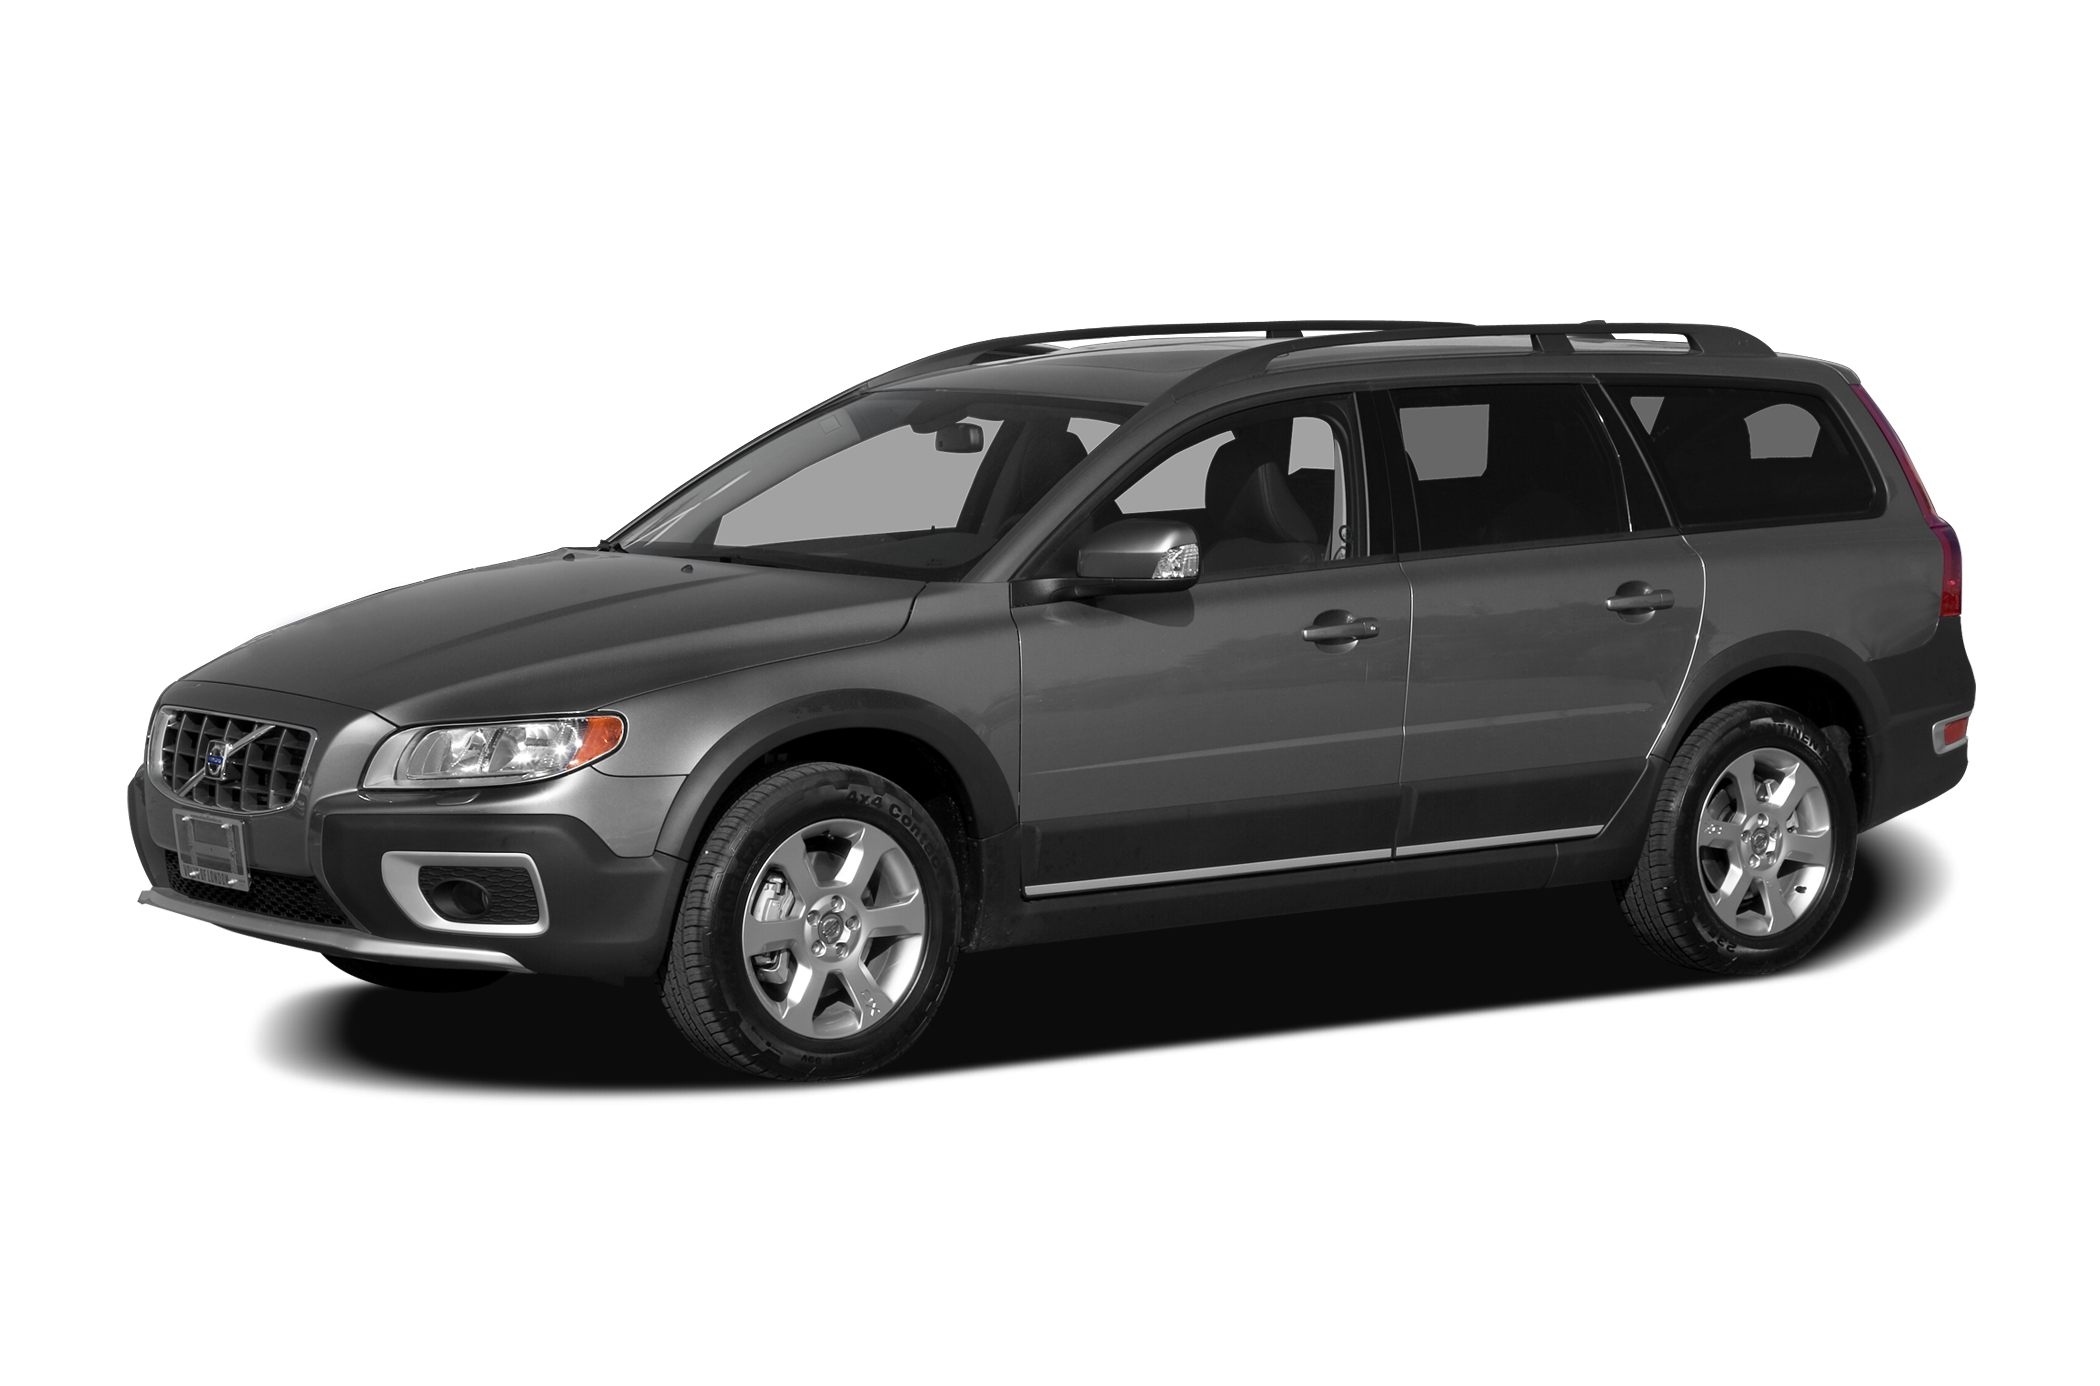 2008 Volvo XC70 3.2 Wagon for sale in Fairfax for $13,981 with 80,439 miles.